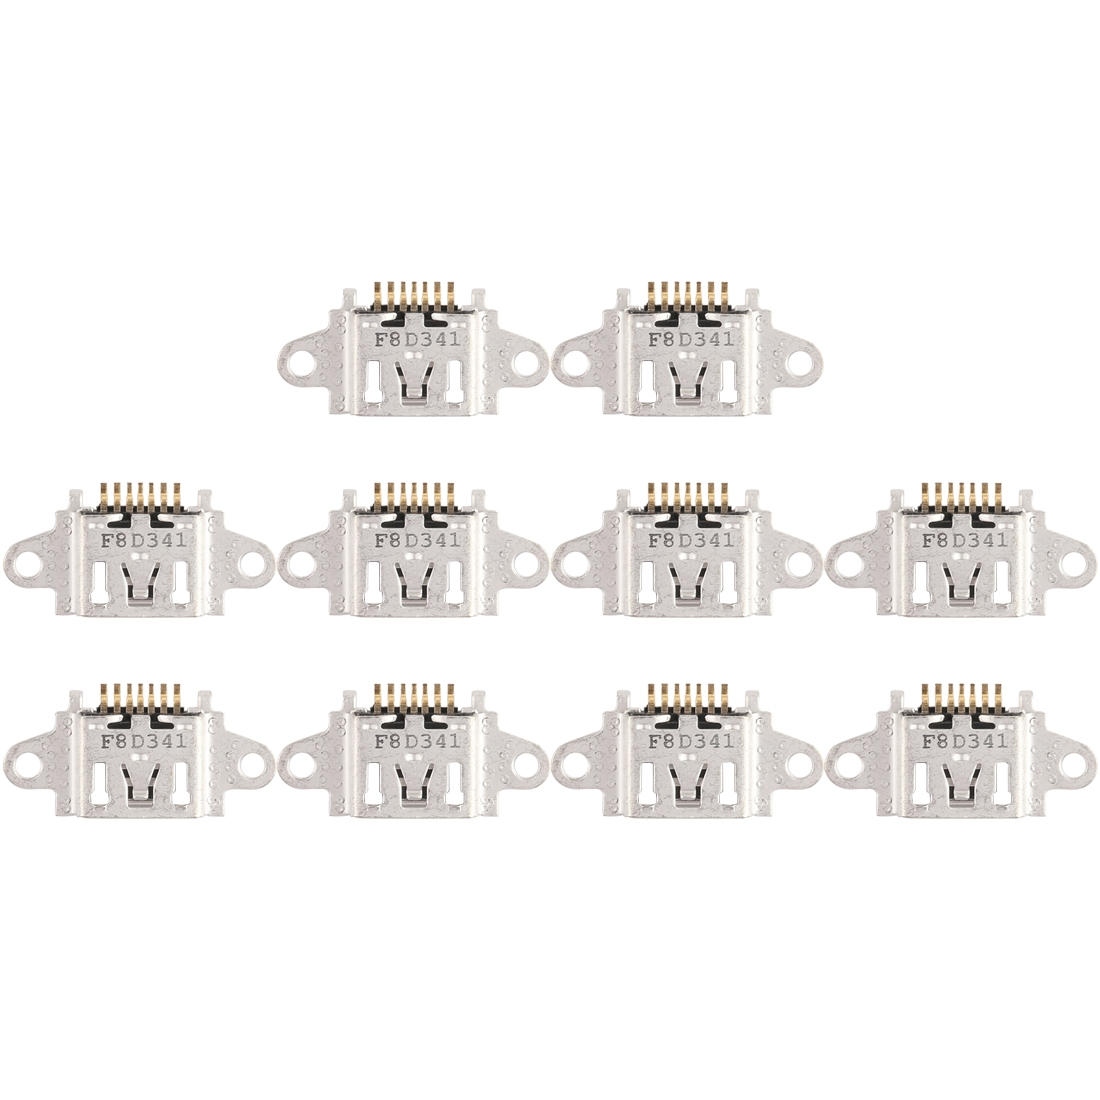 10 PCS Charging Port Connector for OPPO R7 / R7 Plus / A83 / A73 / A79 / A77